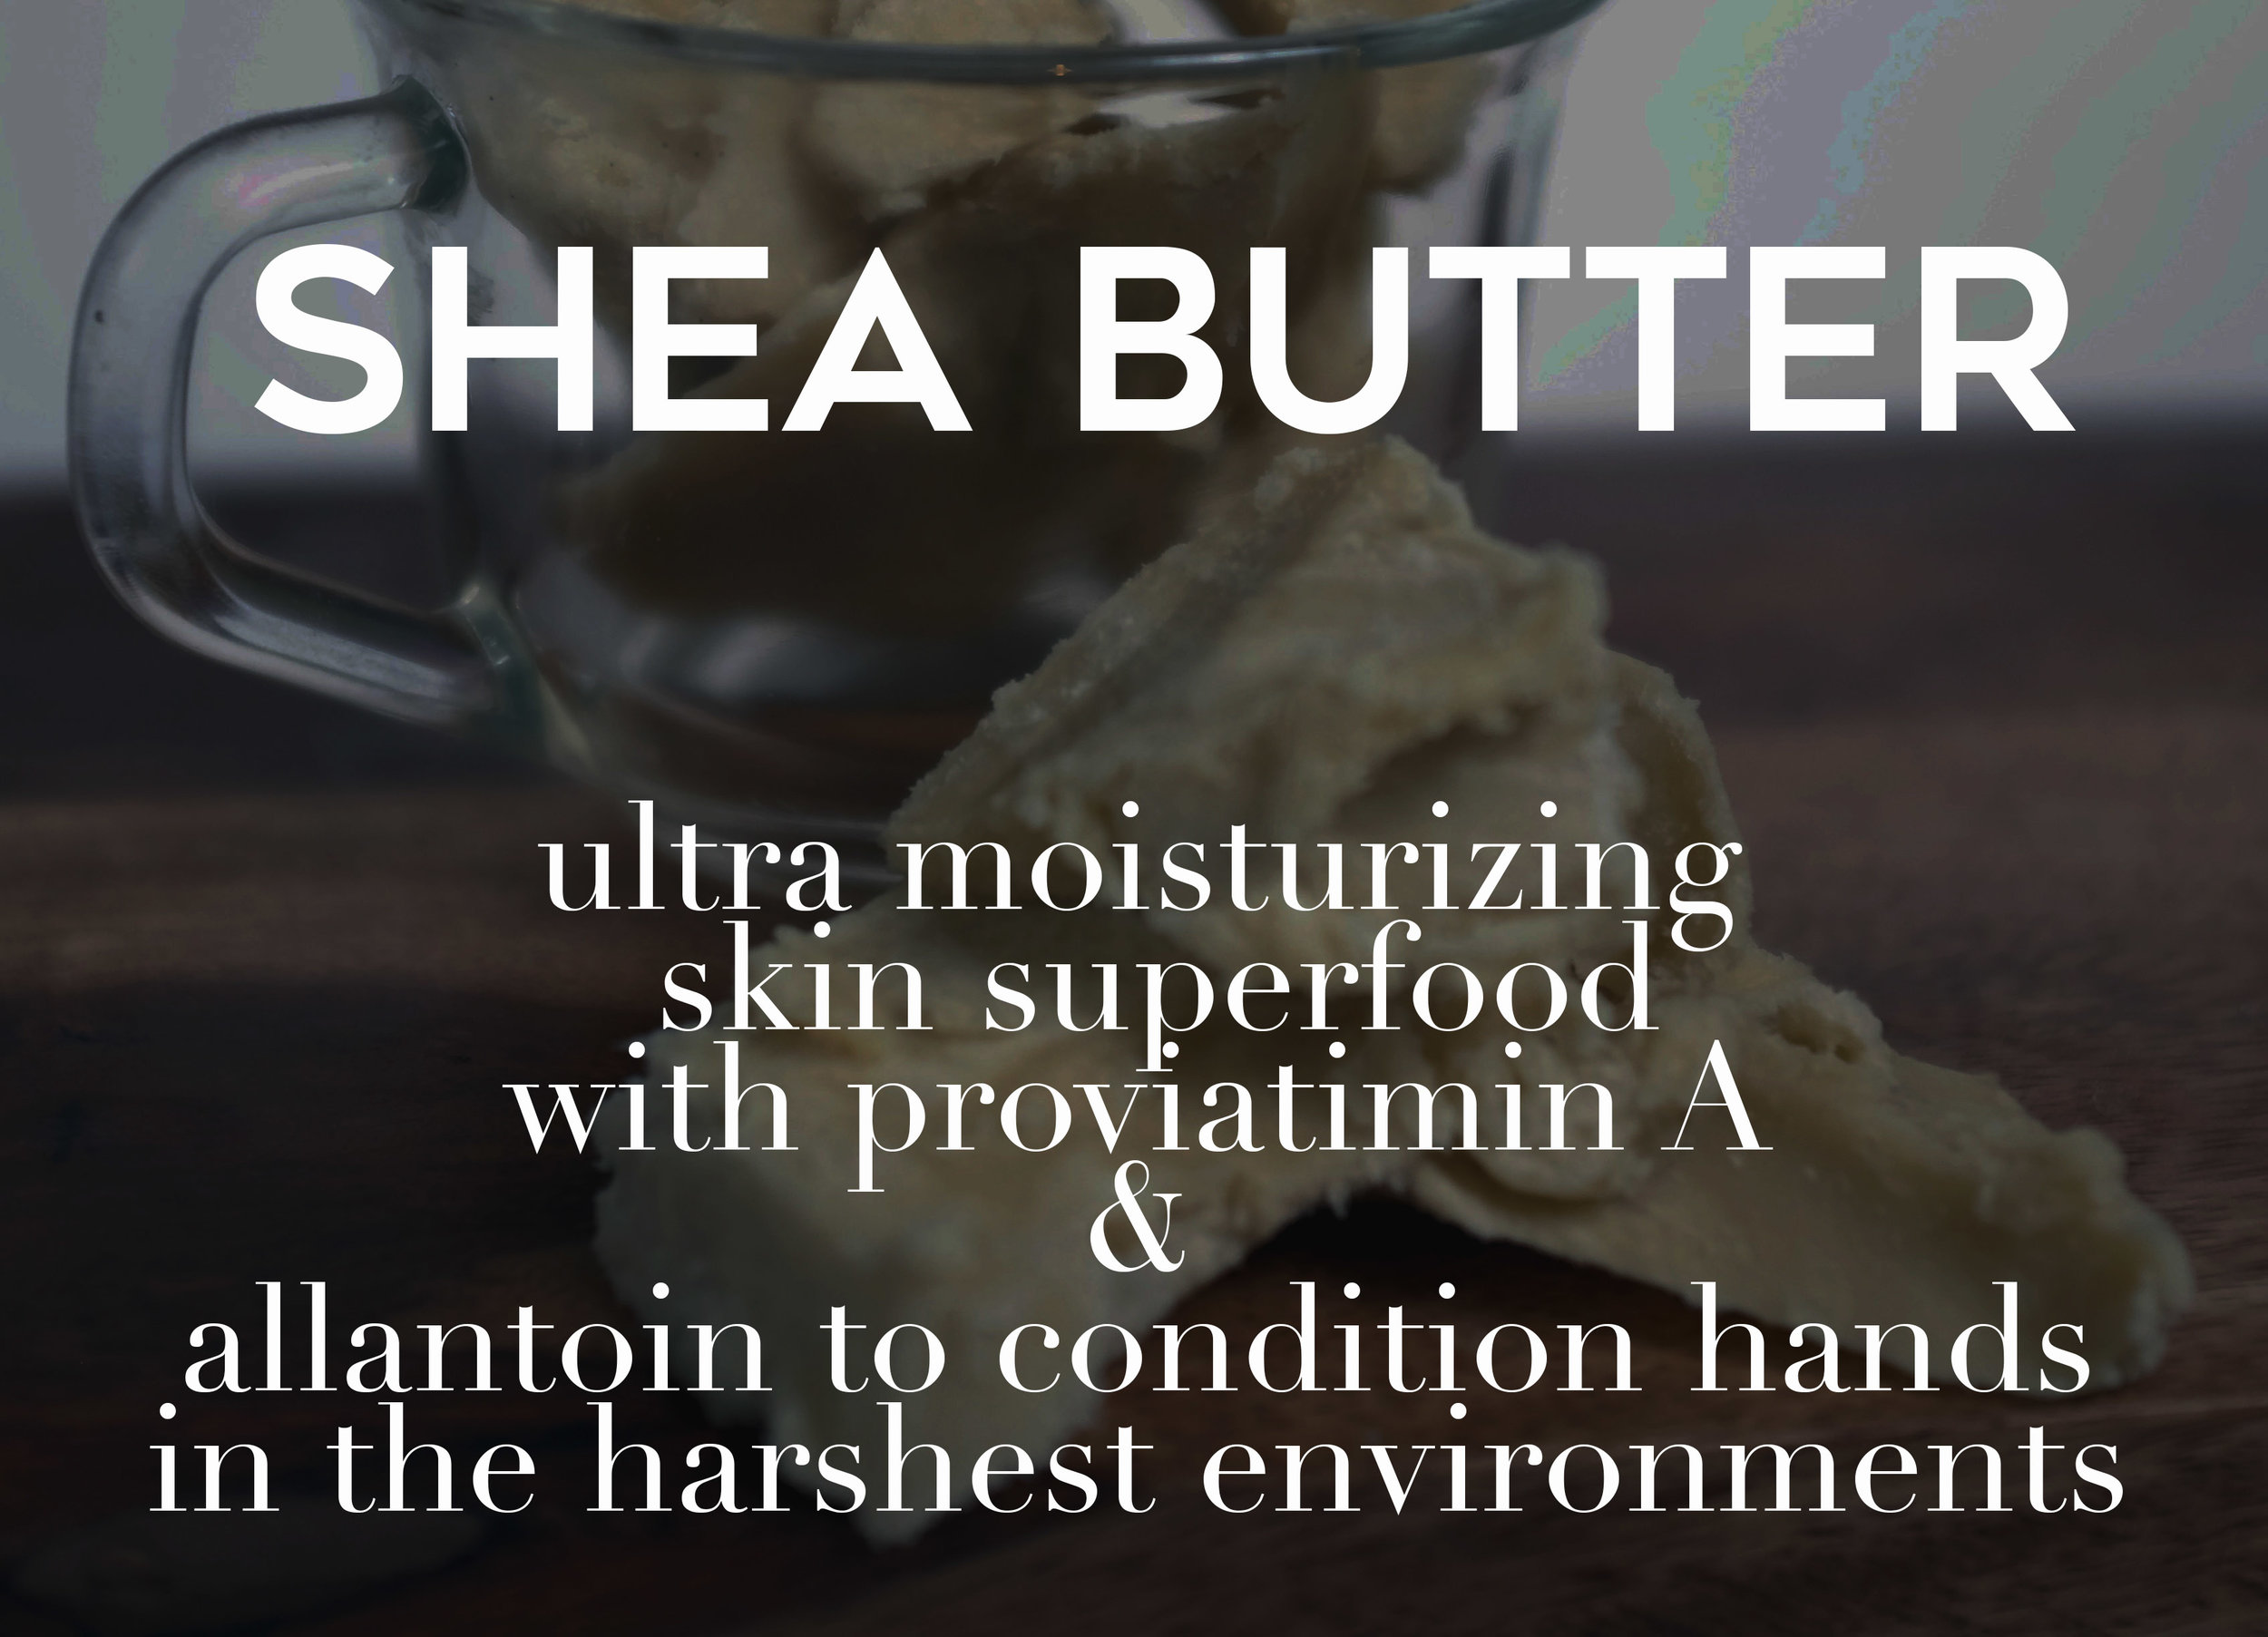 shea butter web photo.jpg